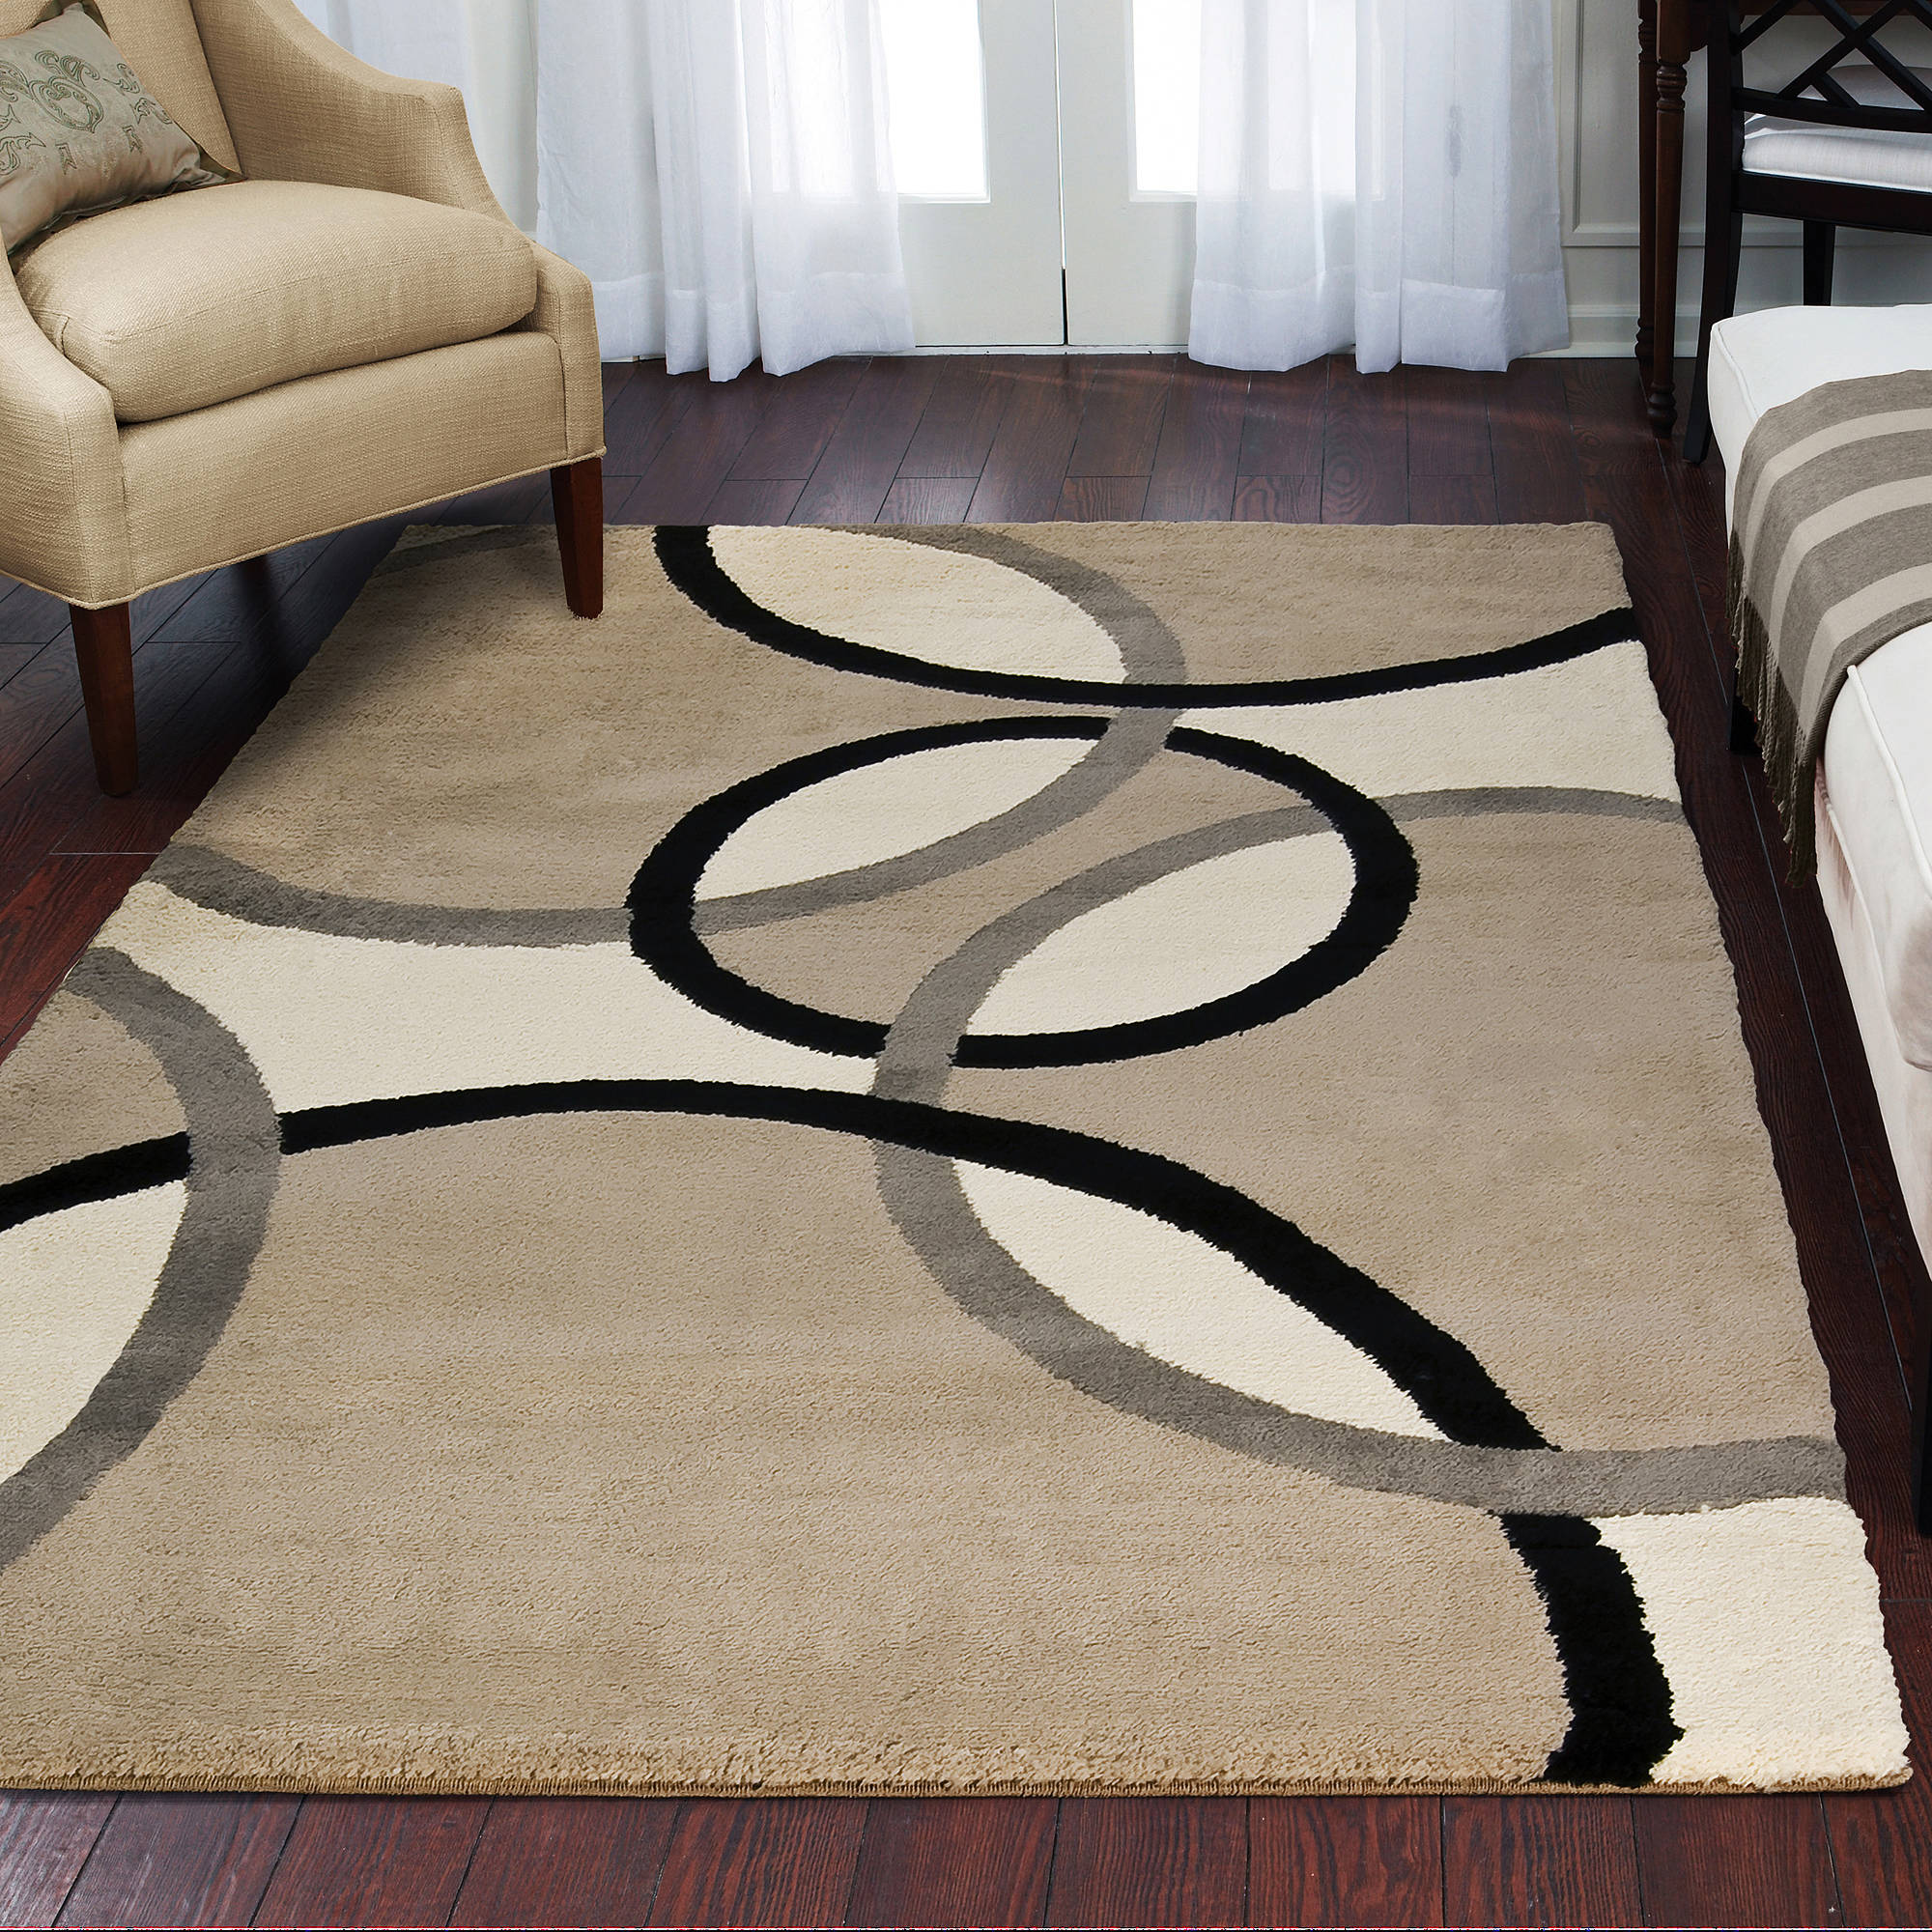 Accent Rugs Walmartcom - New patterned rugs designs